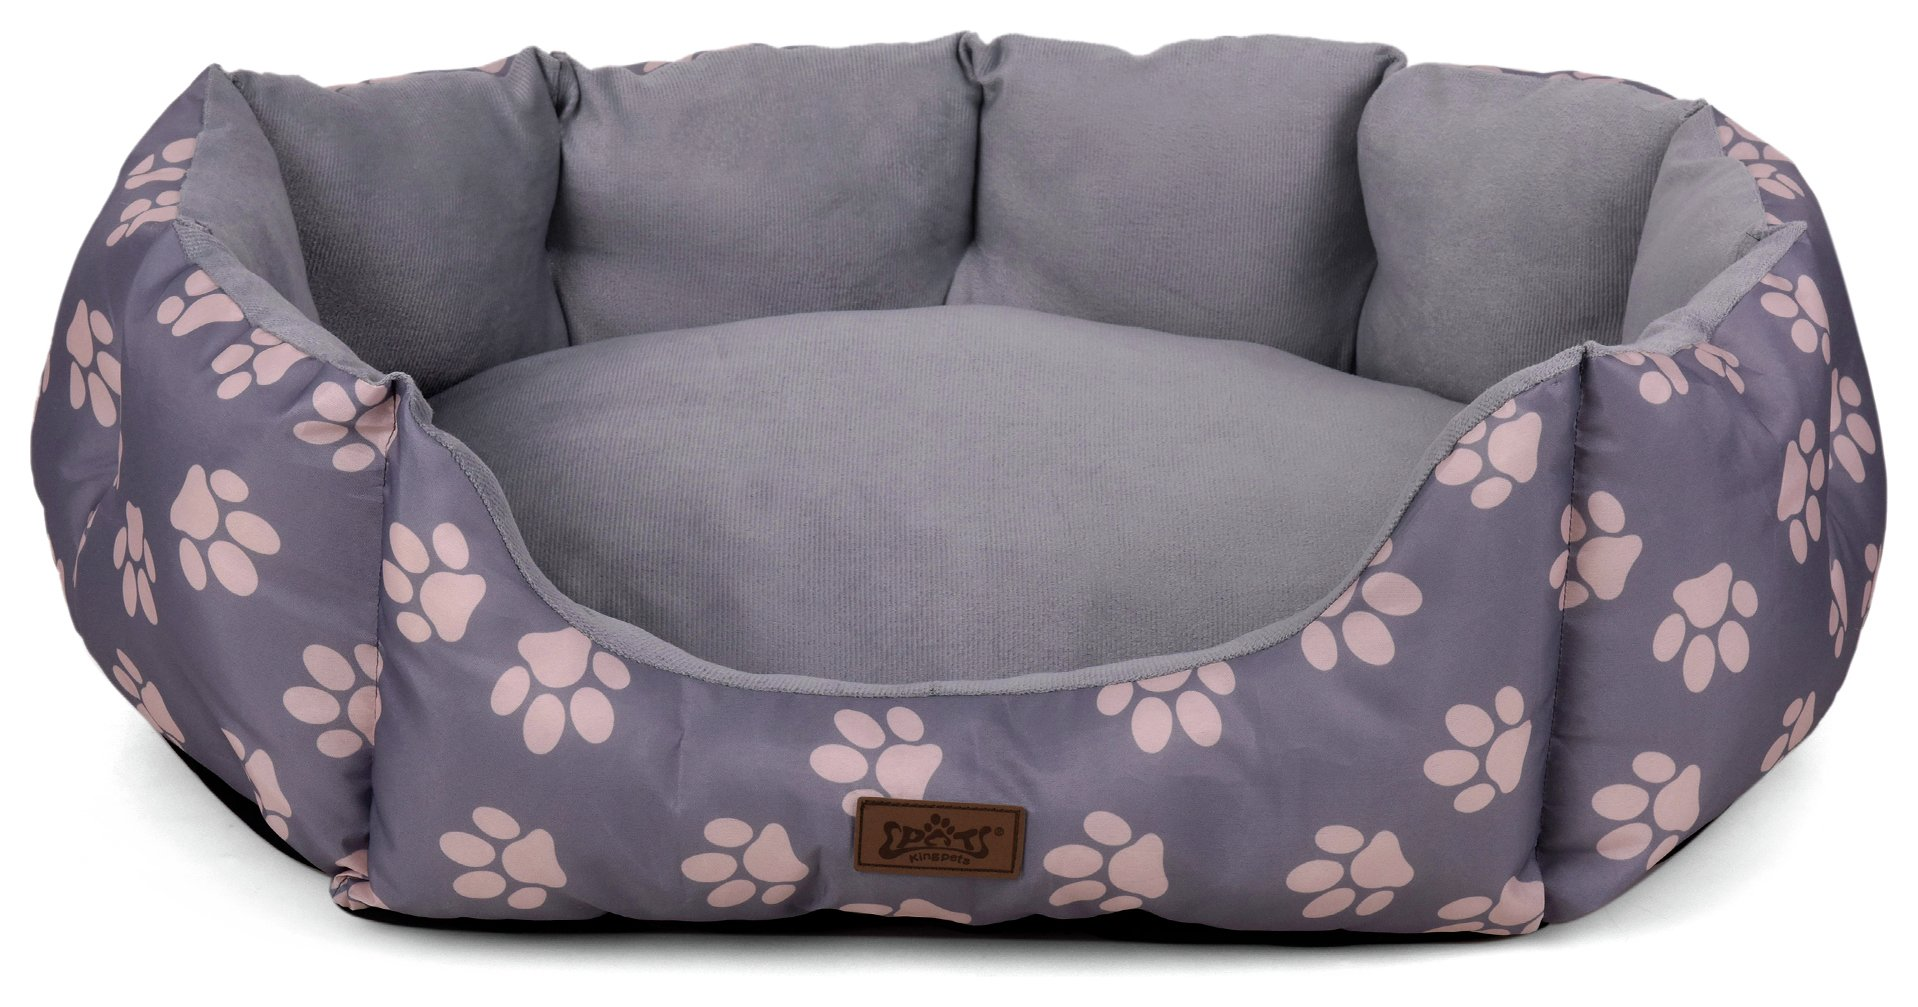 king-pets-value-paw-print-oval-grey-bed-small